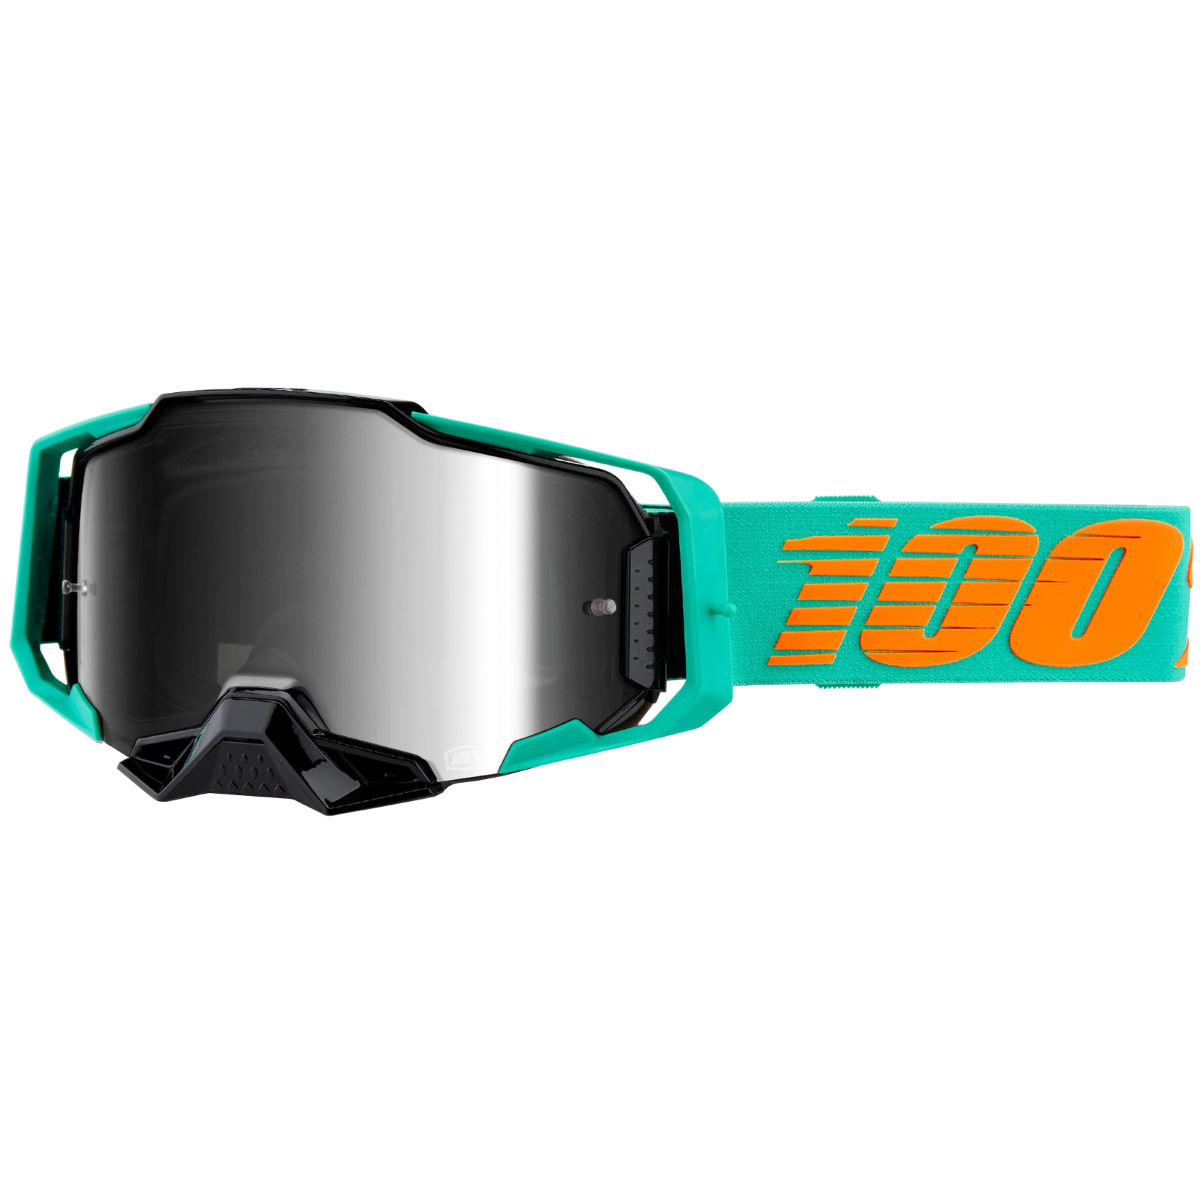 100% Armega Goggle Lightsaber - Ultra Hd Red Mirror Len - One Size